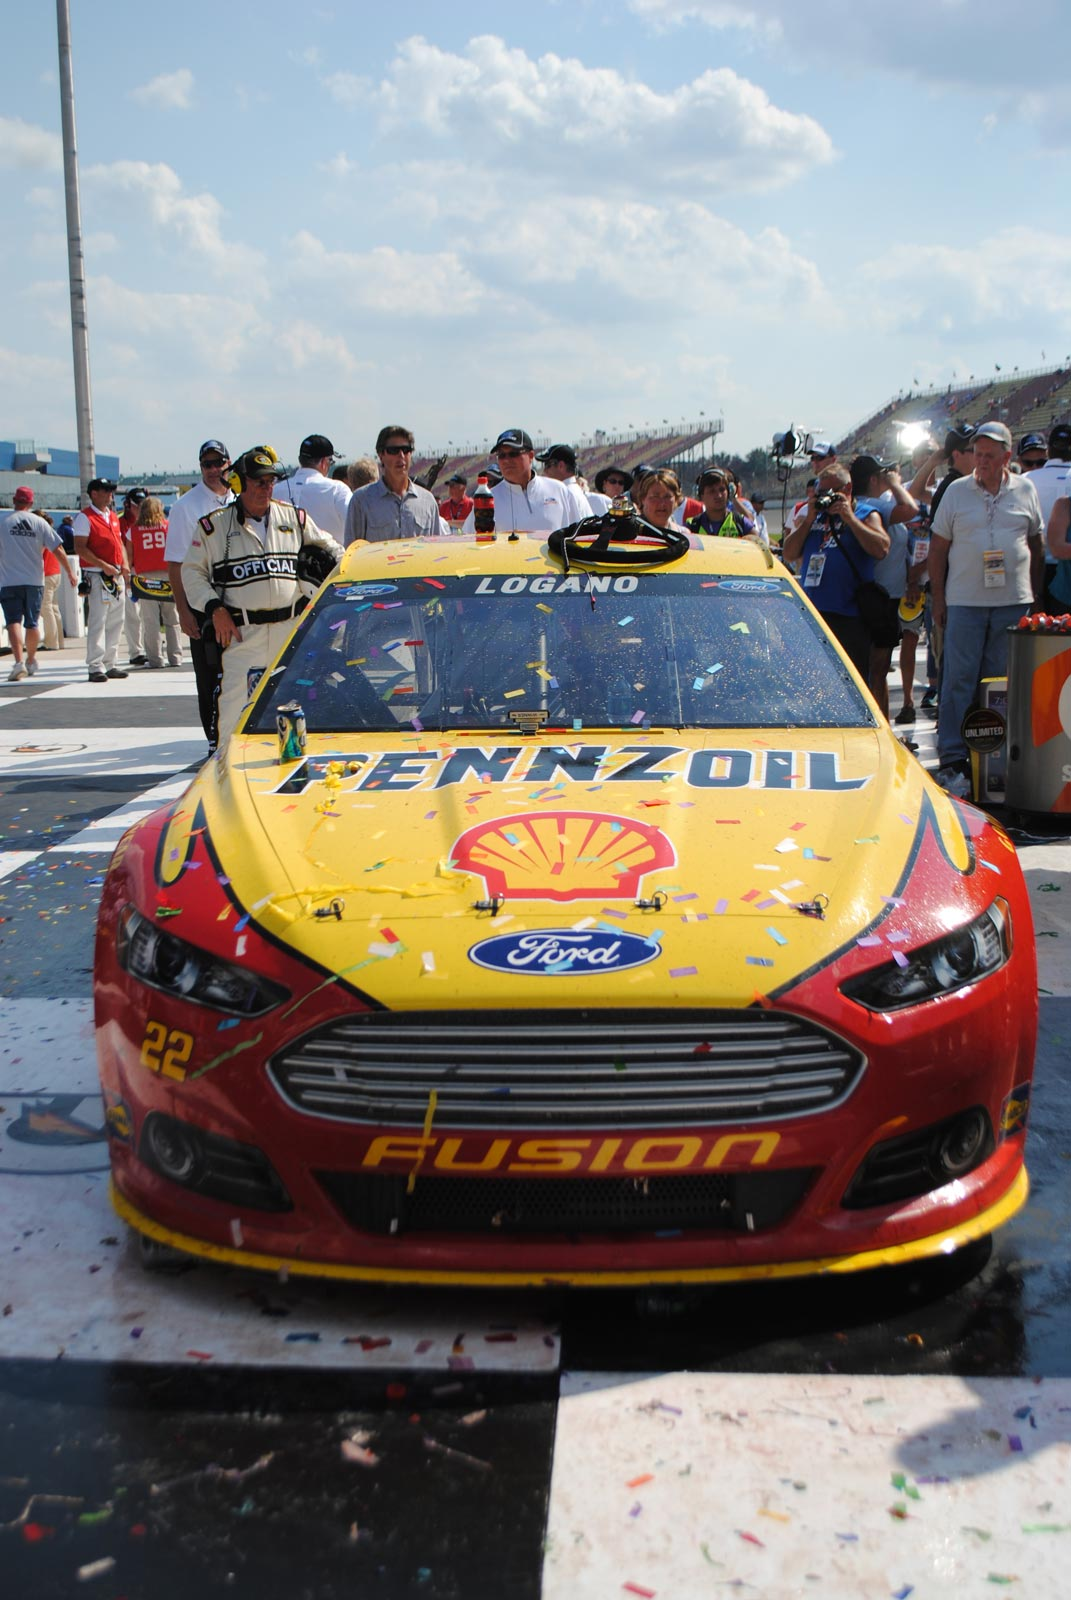 michigan-no-22-car-victory-lane